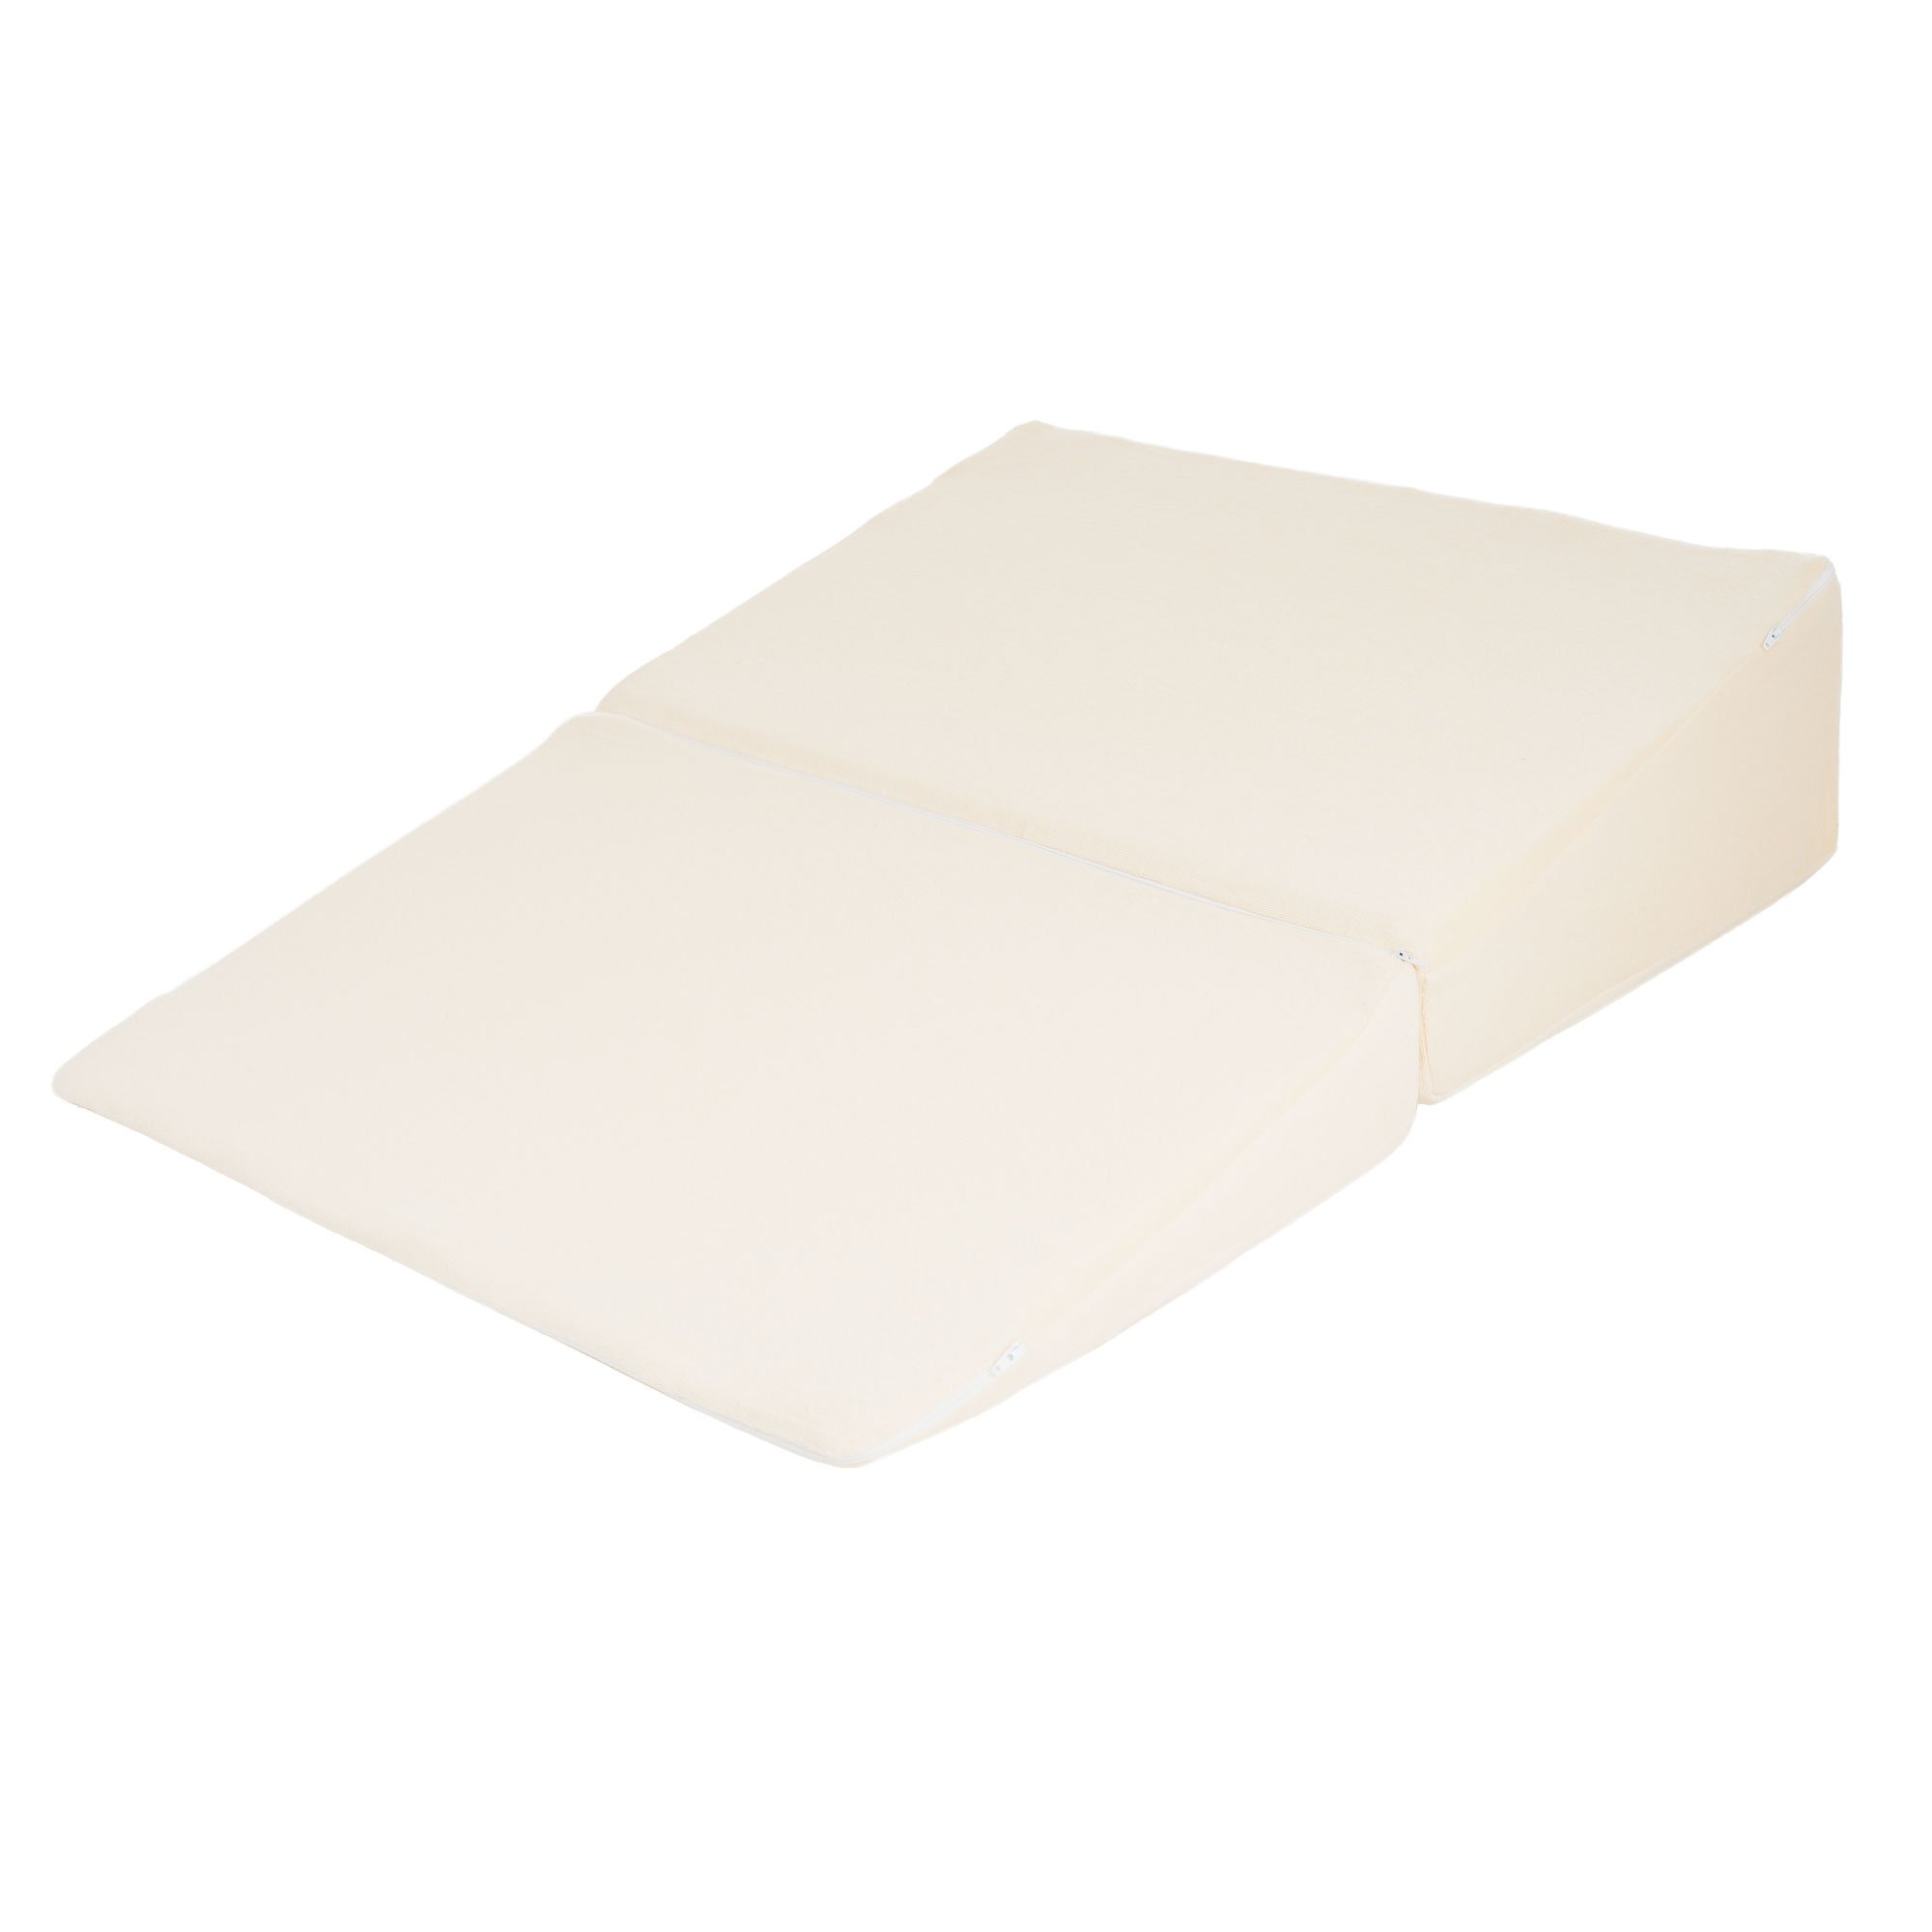 Lavish Home Folding Wedge Memory Foam Pillow, 31'' x 24'' x 7'' by Lavish Home